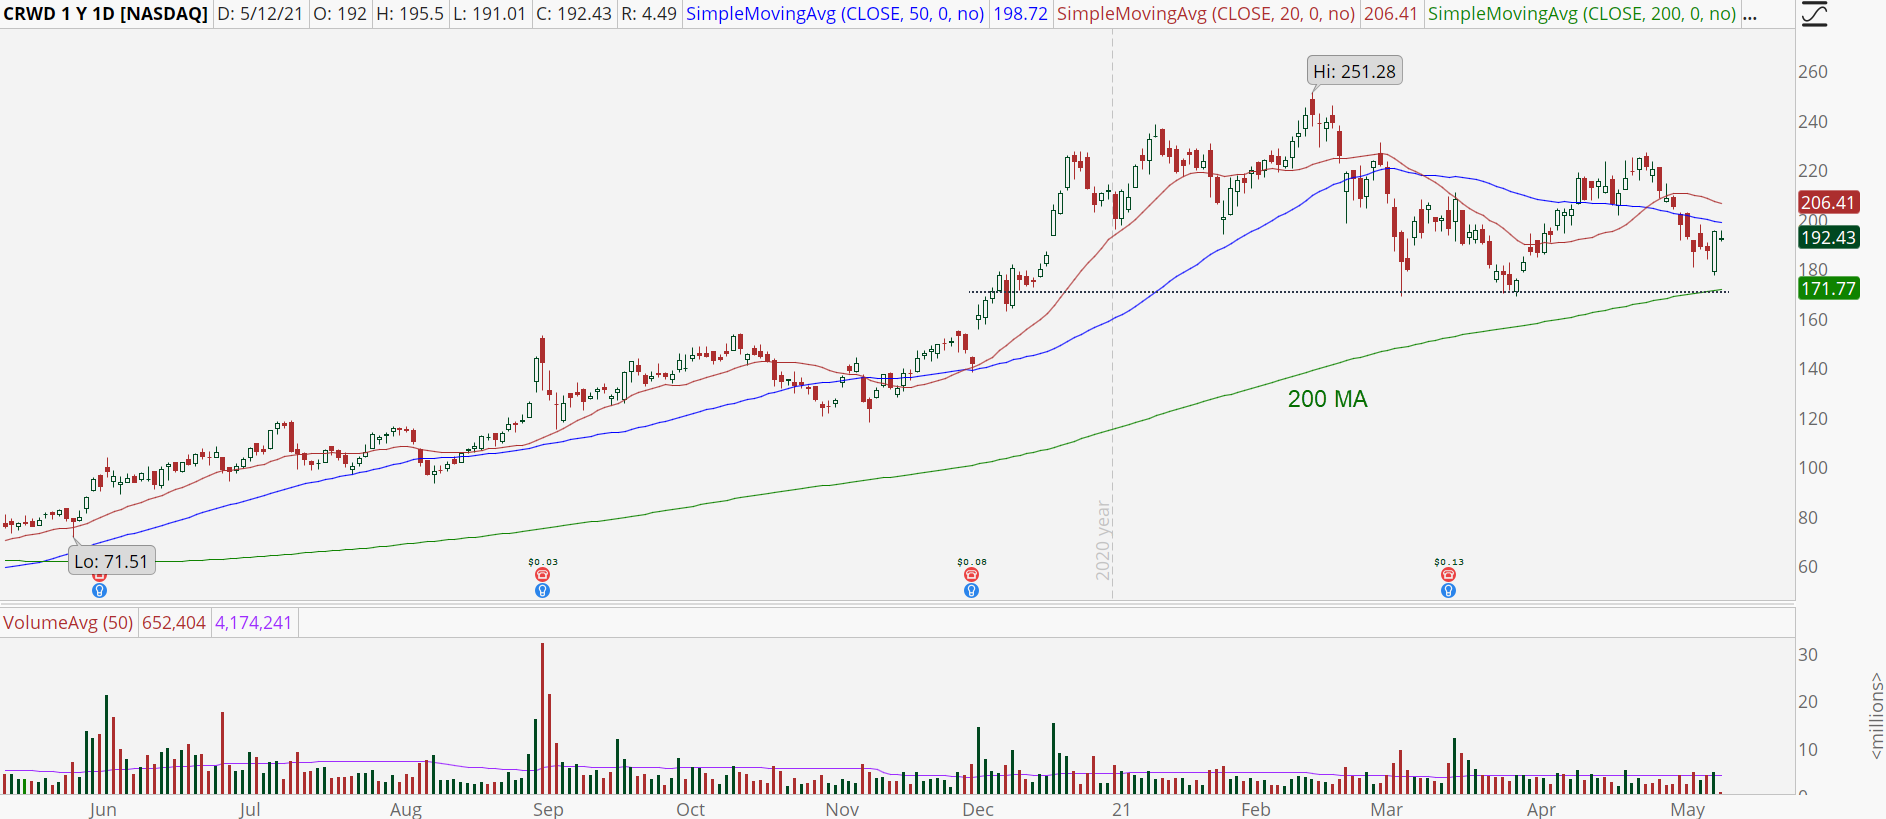 Crowdstrike Holdings (CRWD) with potential support bounce